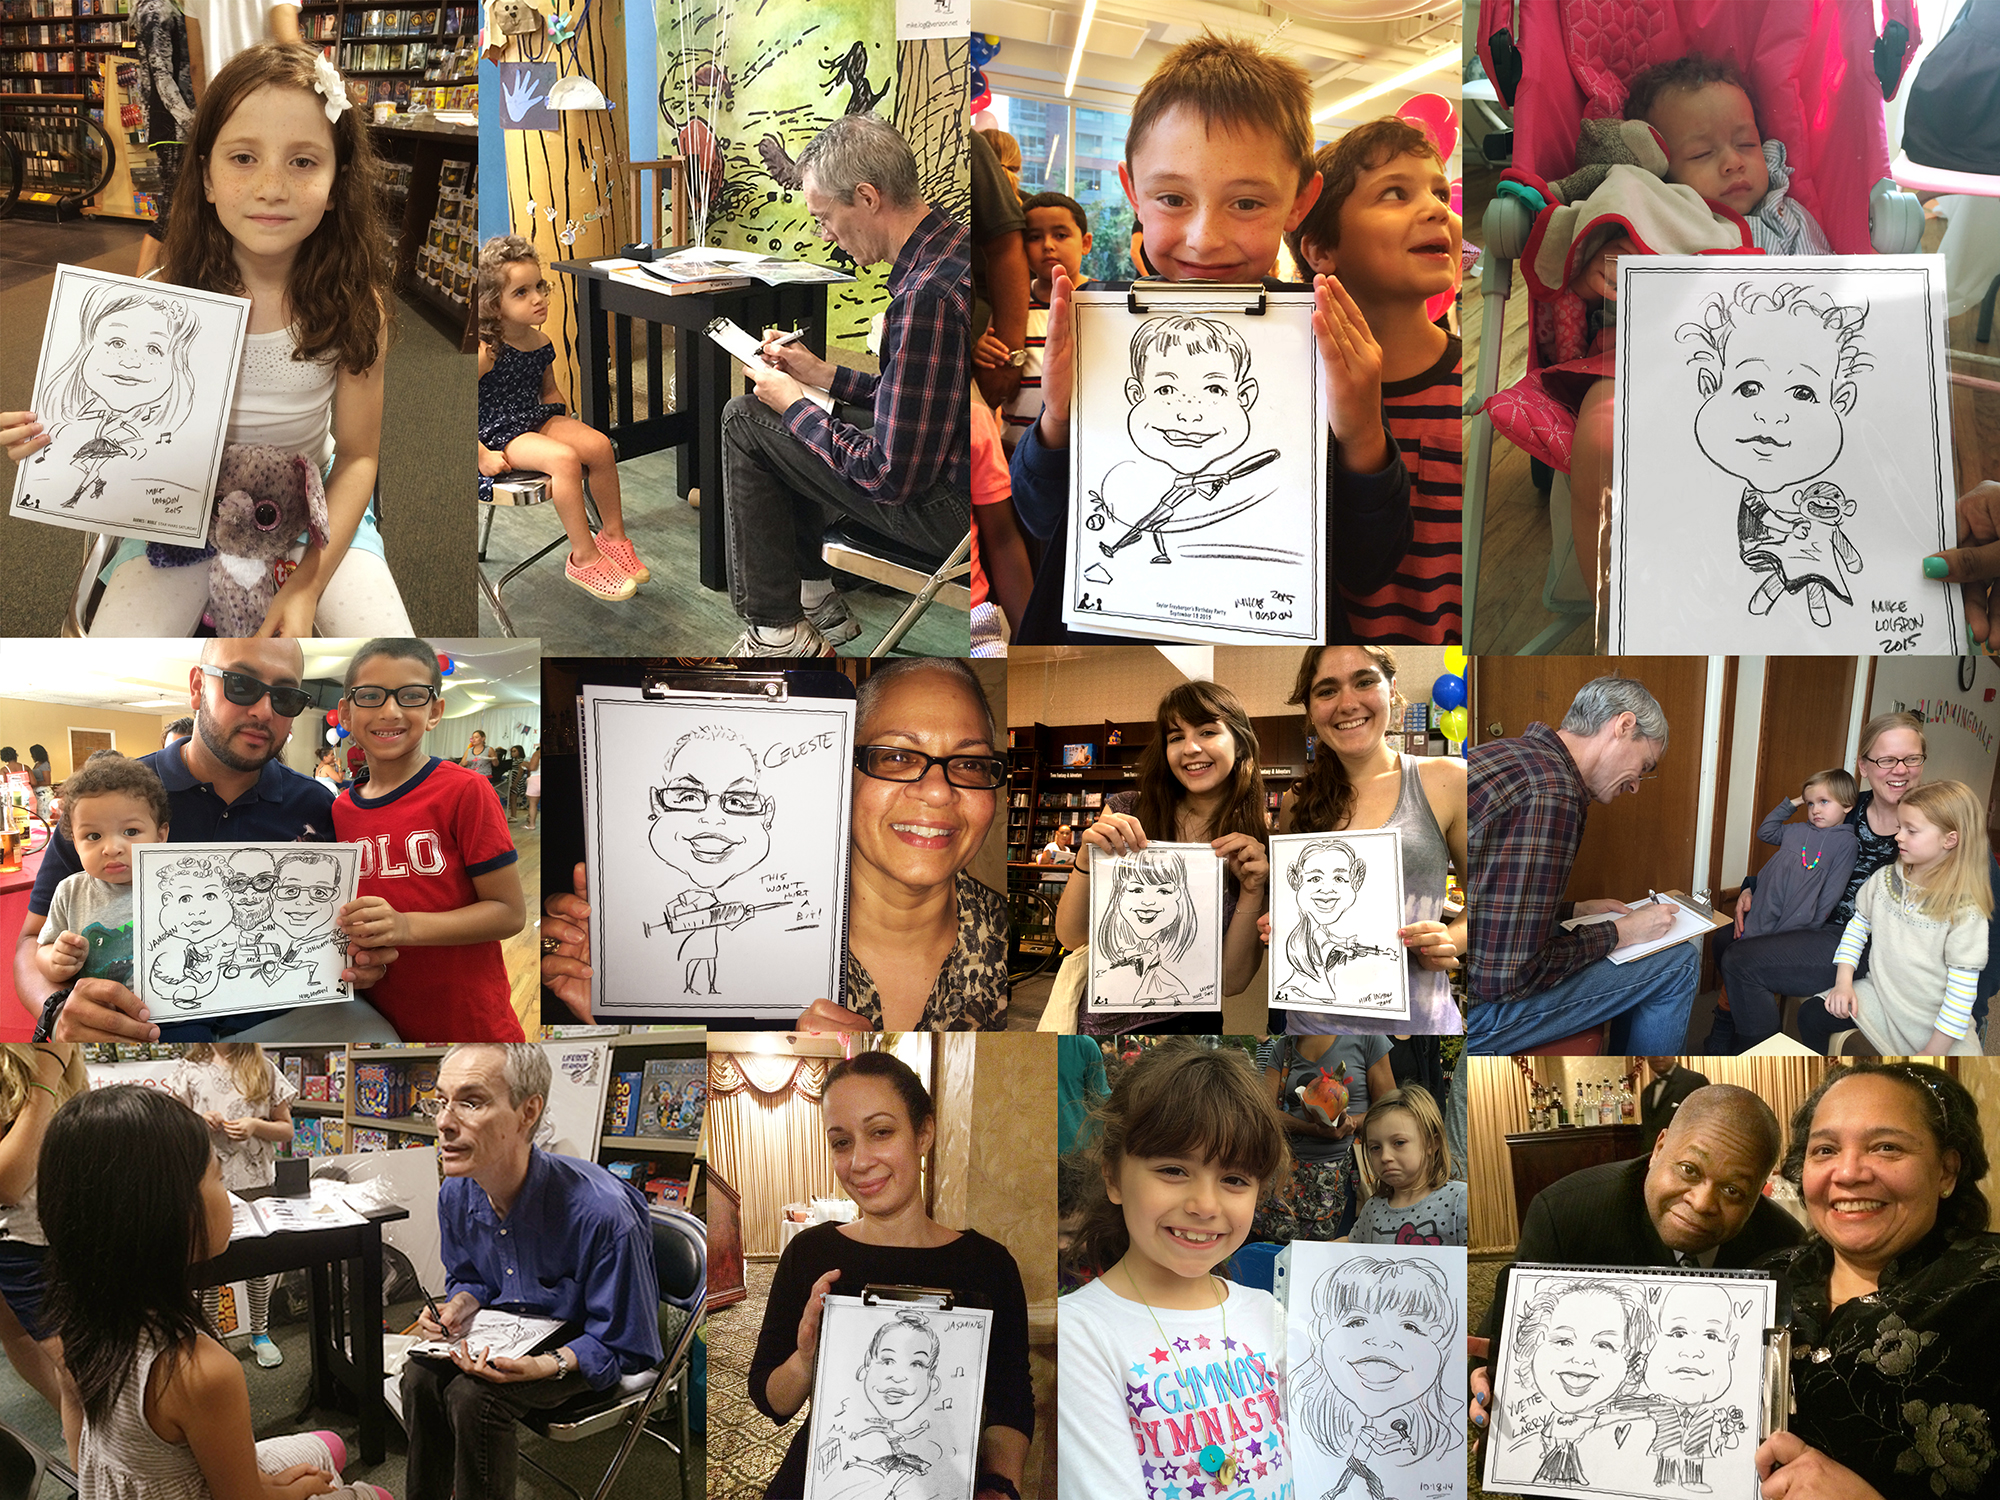 Draw My Party Event Caricatures